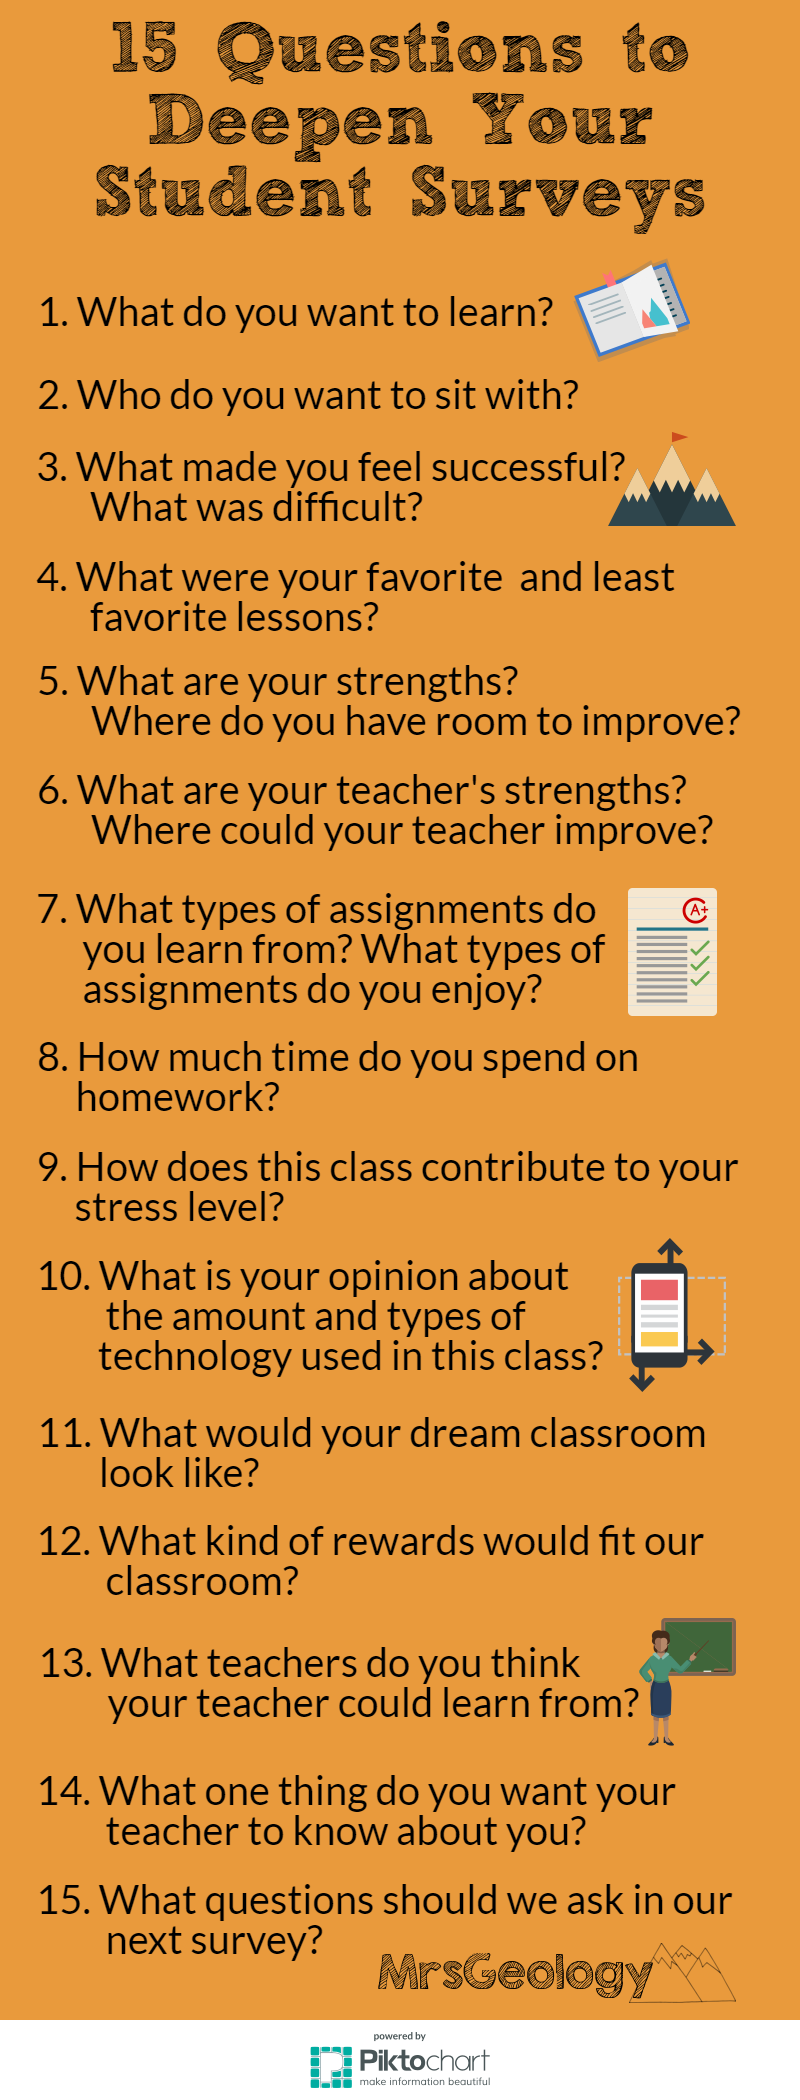 15 Questions to Deepen Your Student Surveys Infographic from MrsGeology. Find out why these are my favorite questions to ask students!